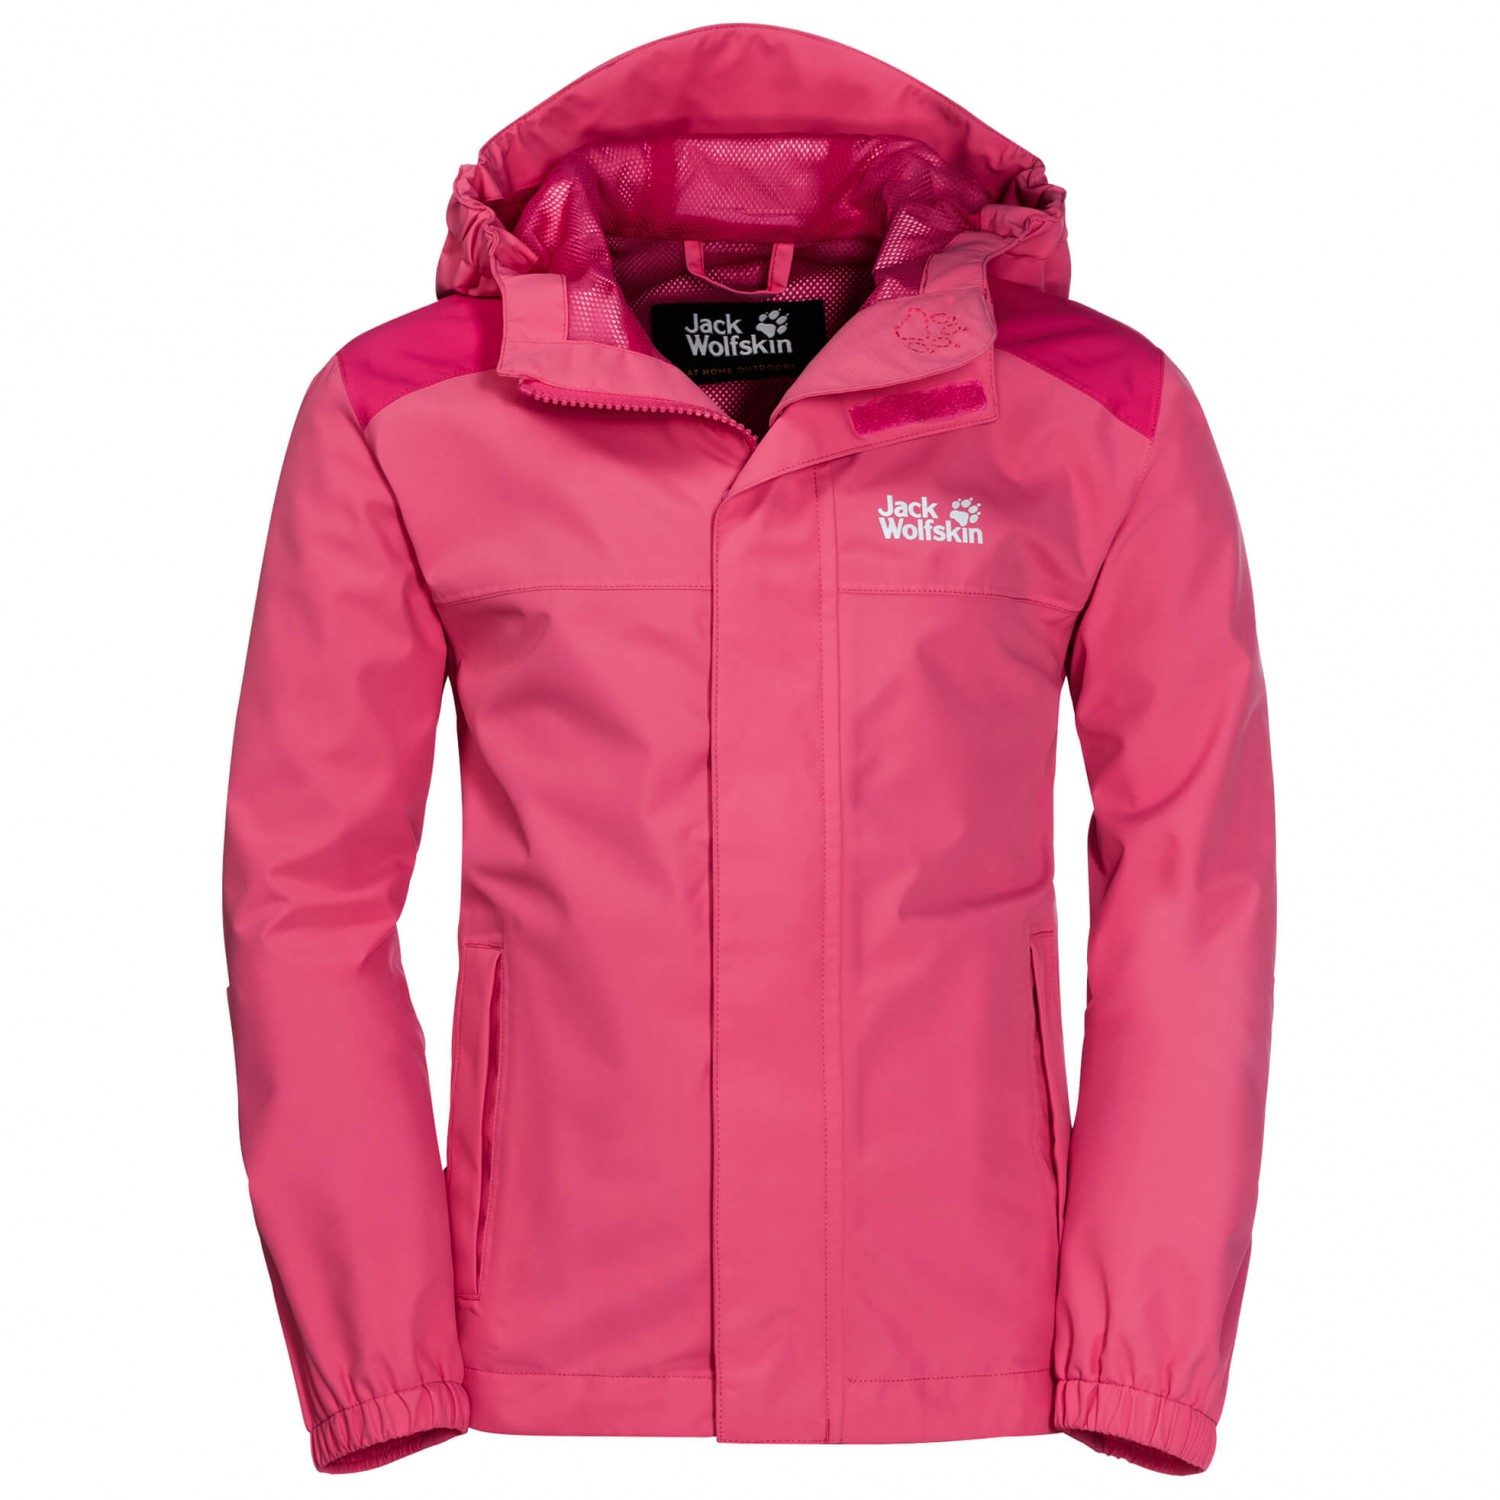 oak creek jacket hardshell-jacke kinder